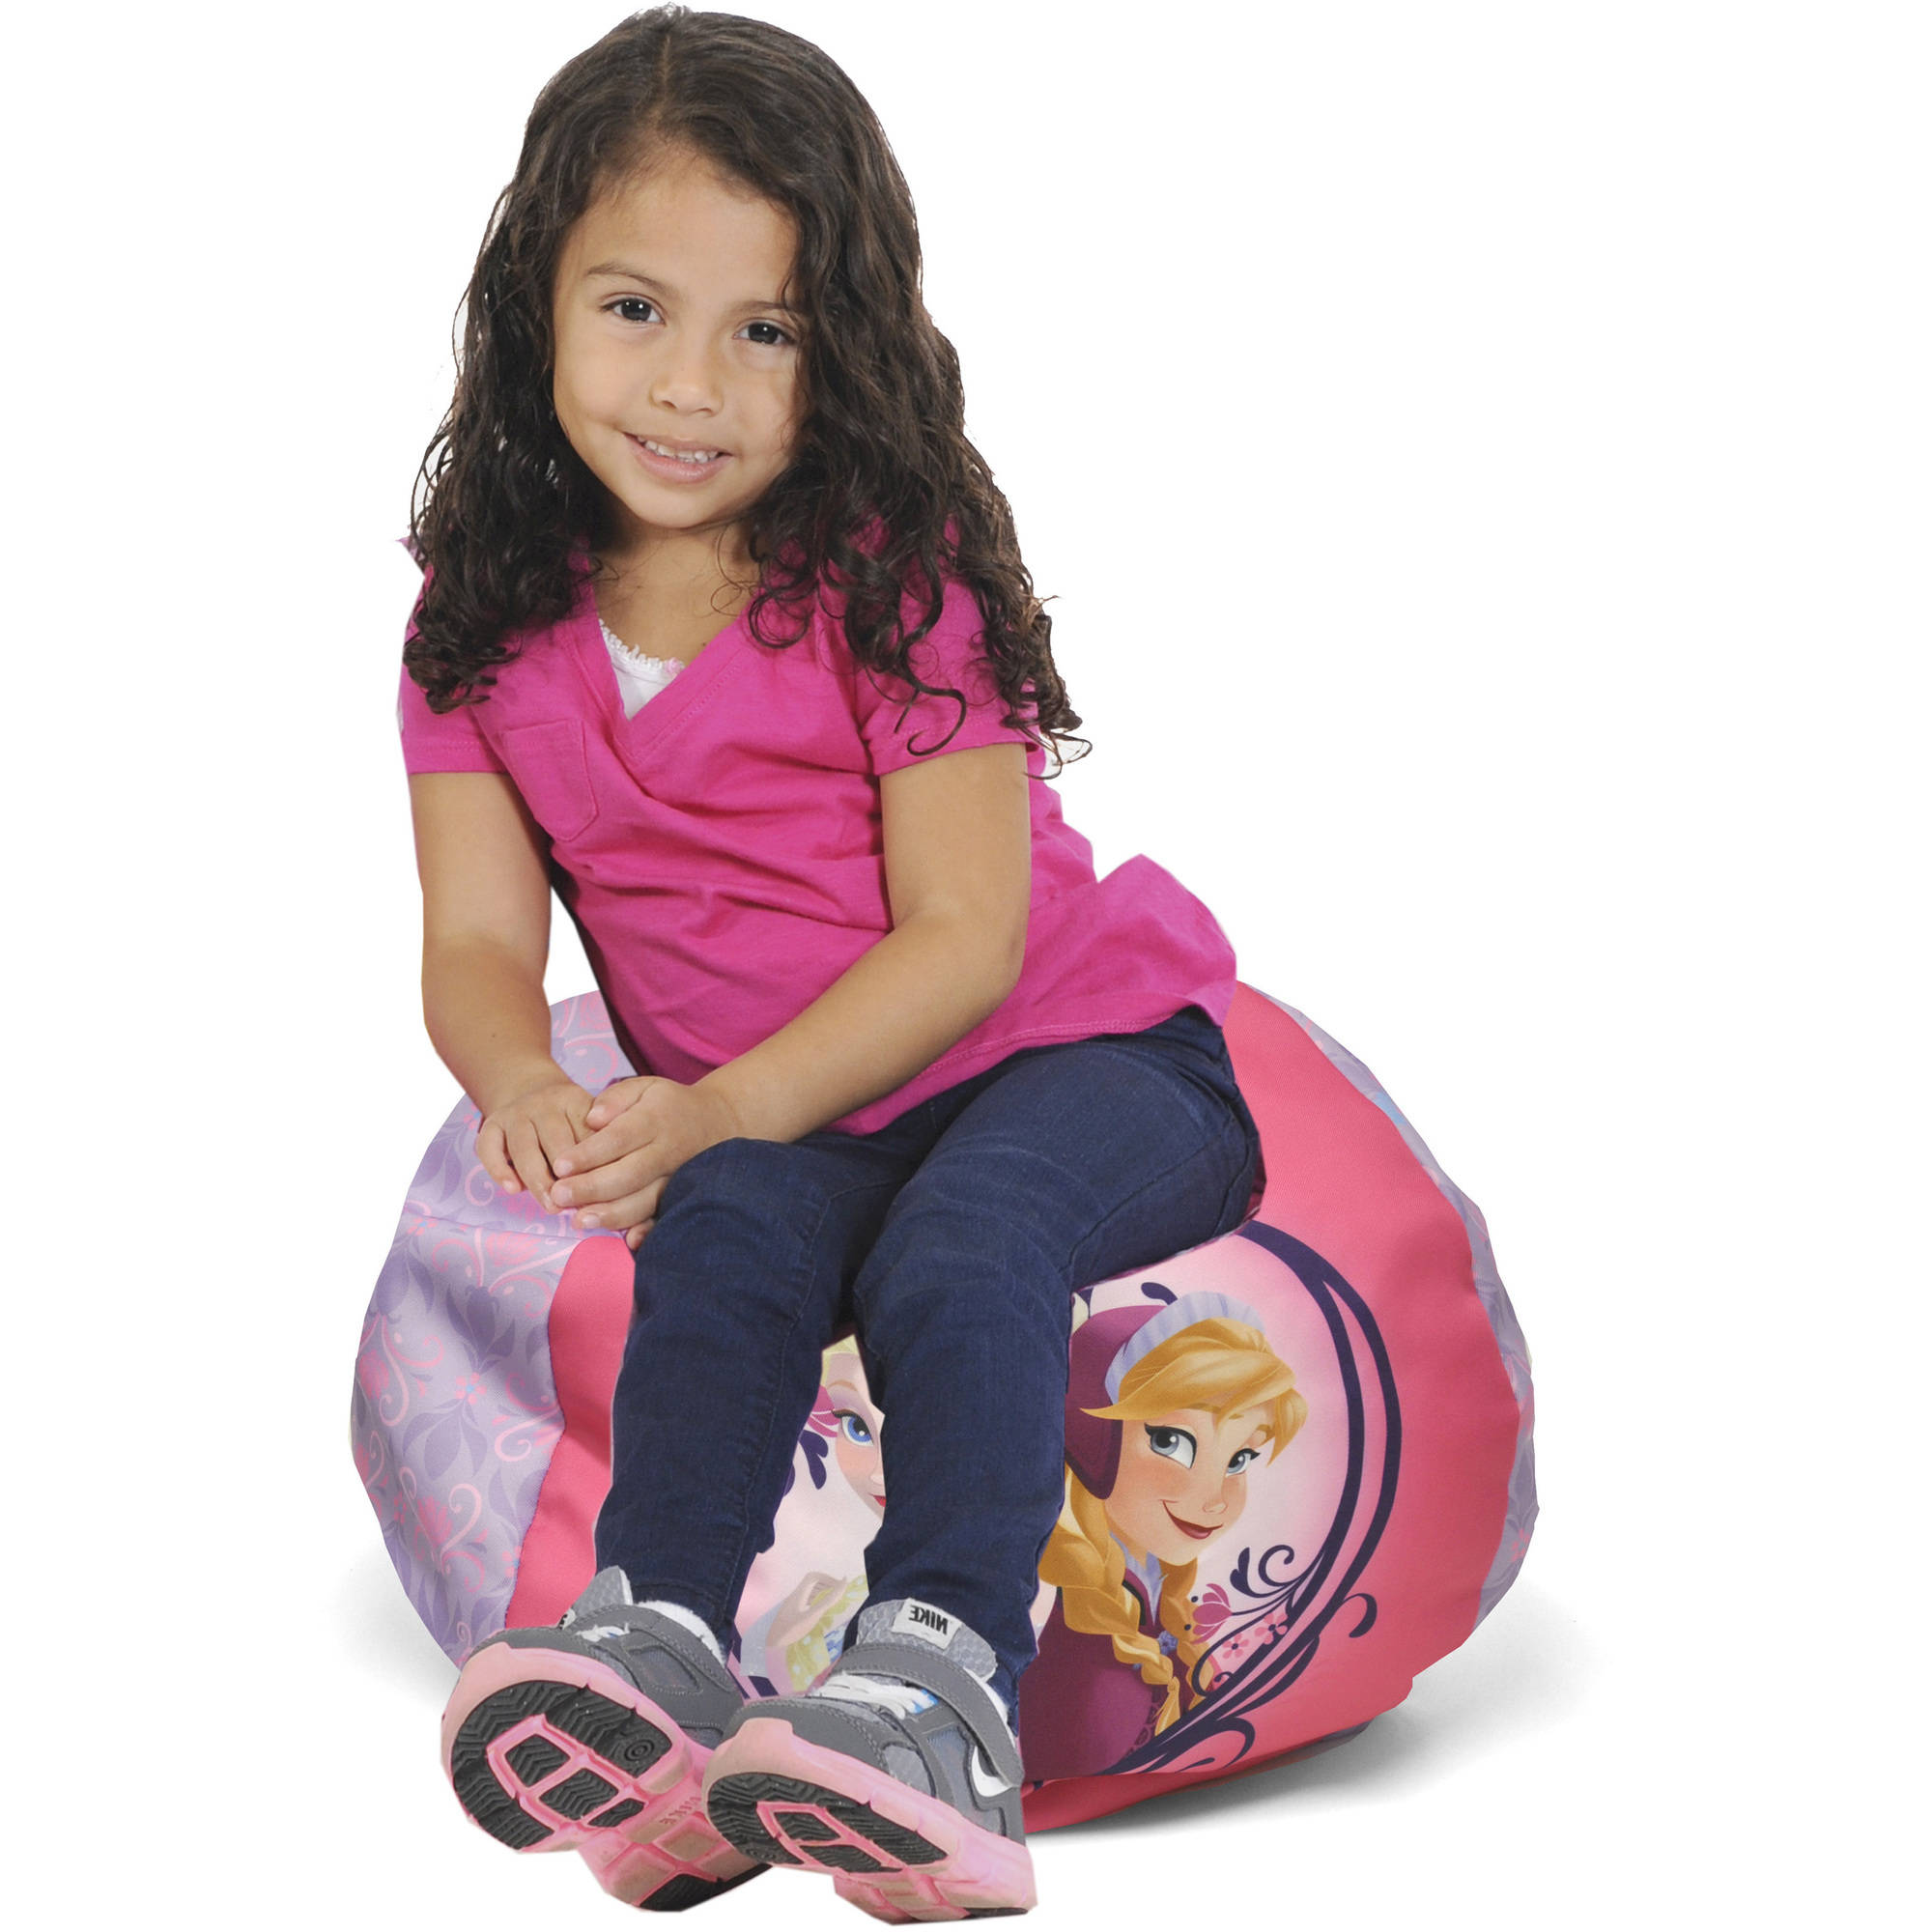 Disney Frozen Movie Round Bean Bag Chair